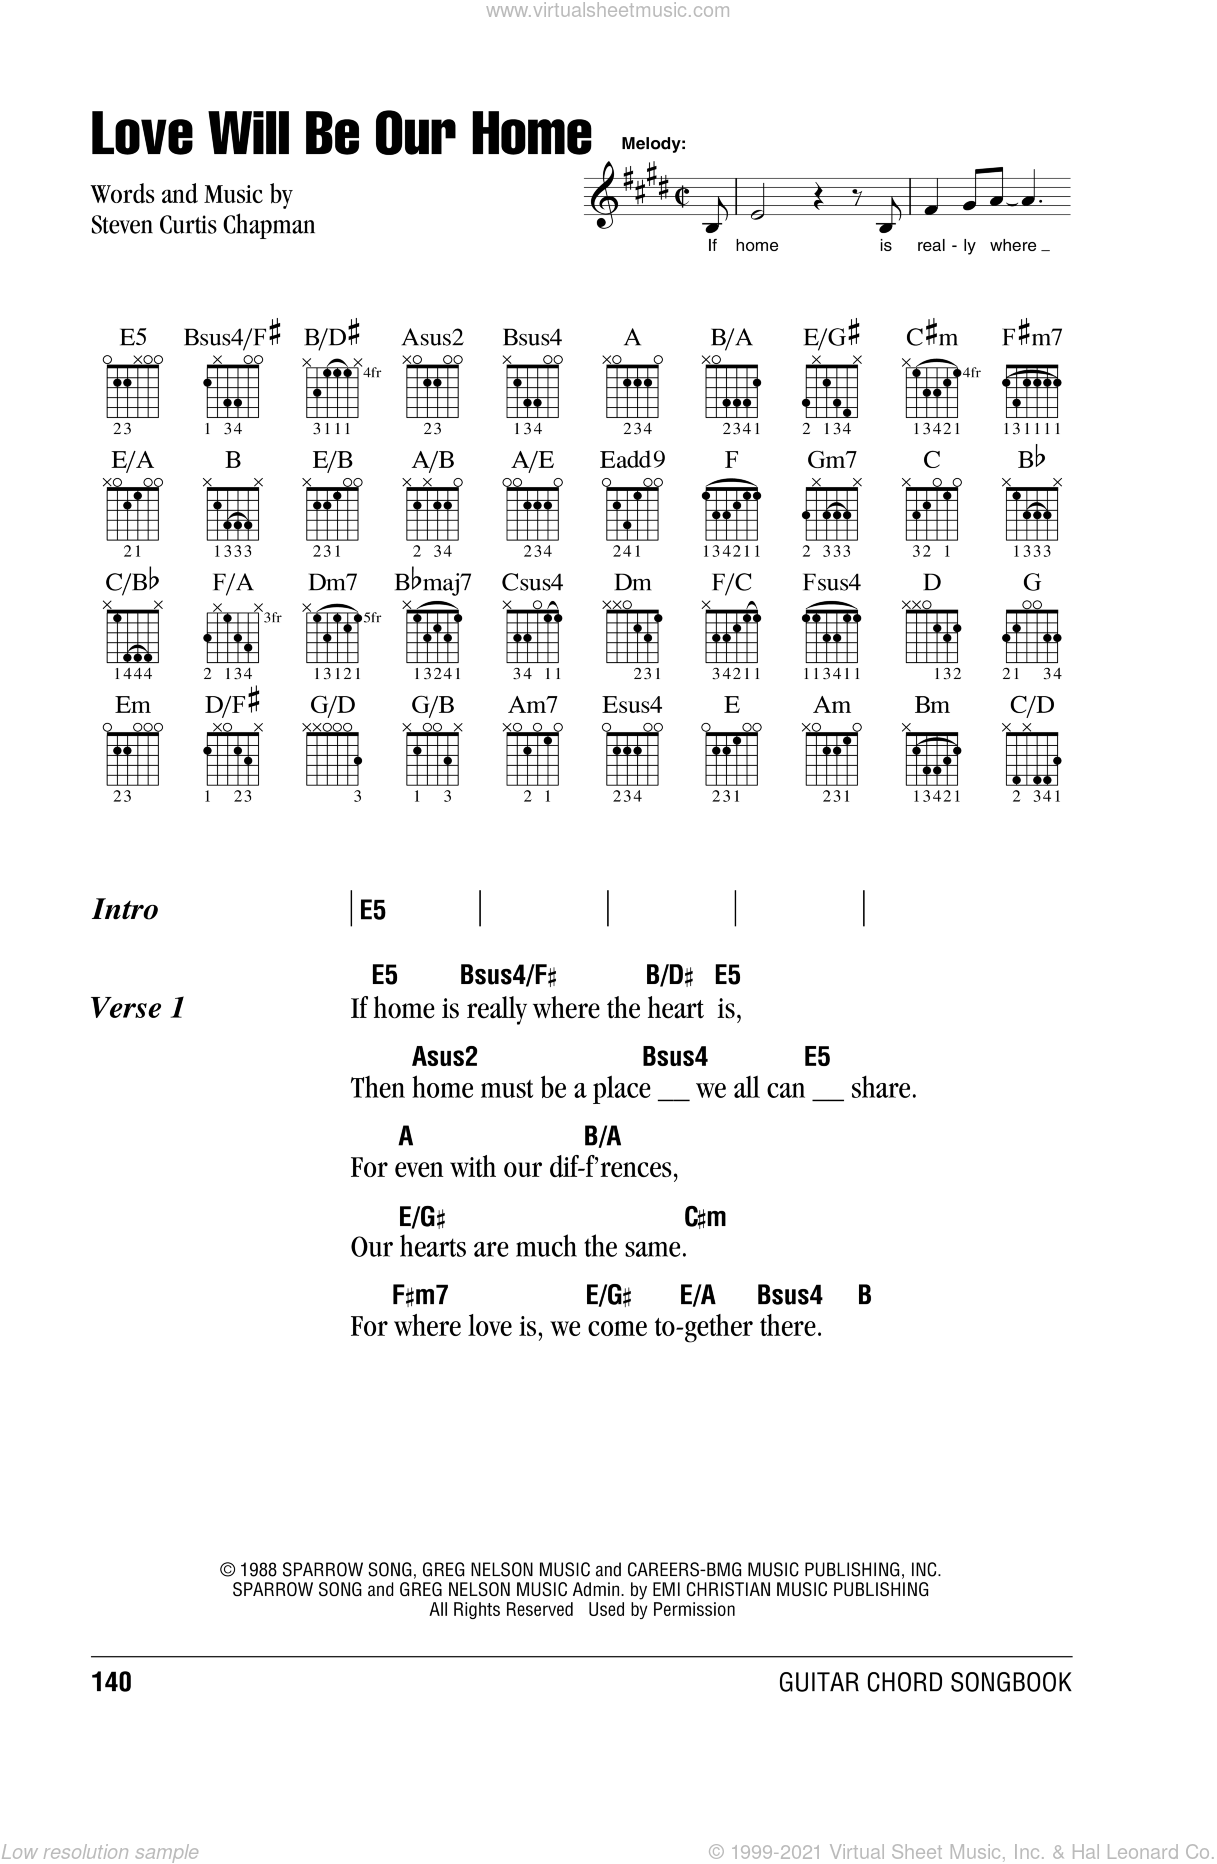 Love Will Be Our Home sheet music for guitar (chords) by Steven Curtis Chapman